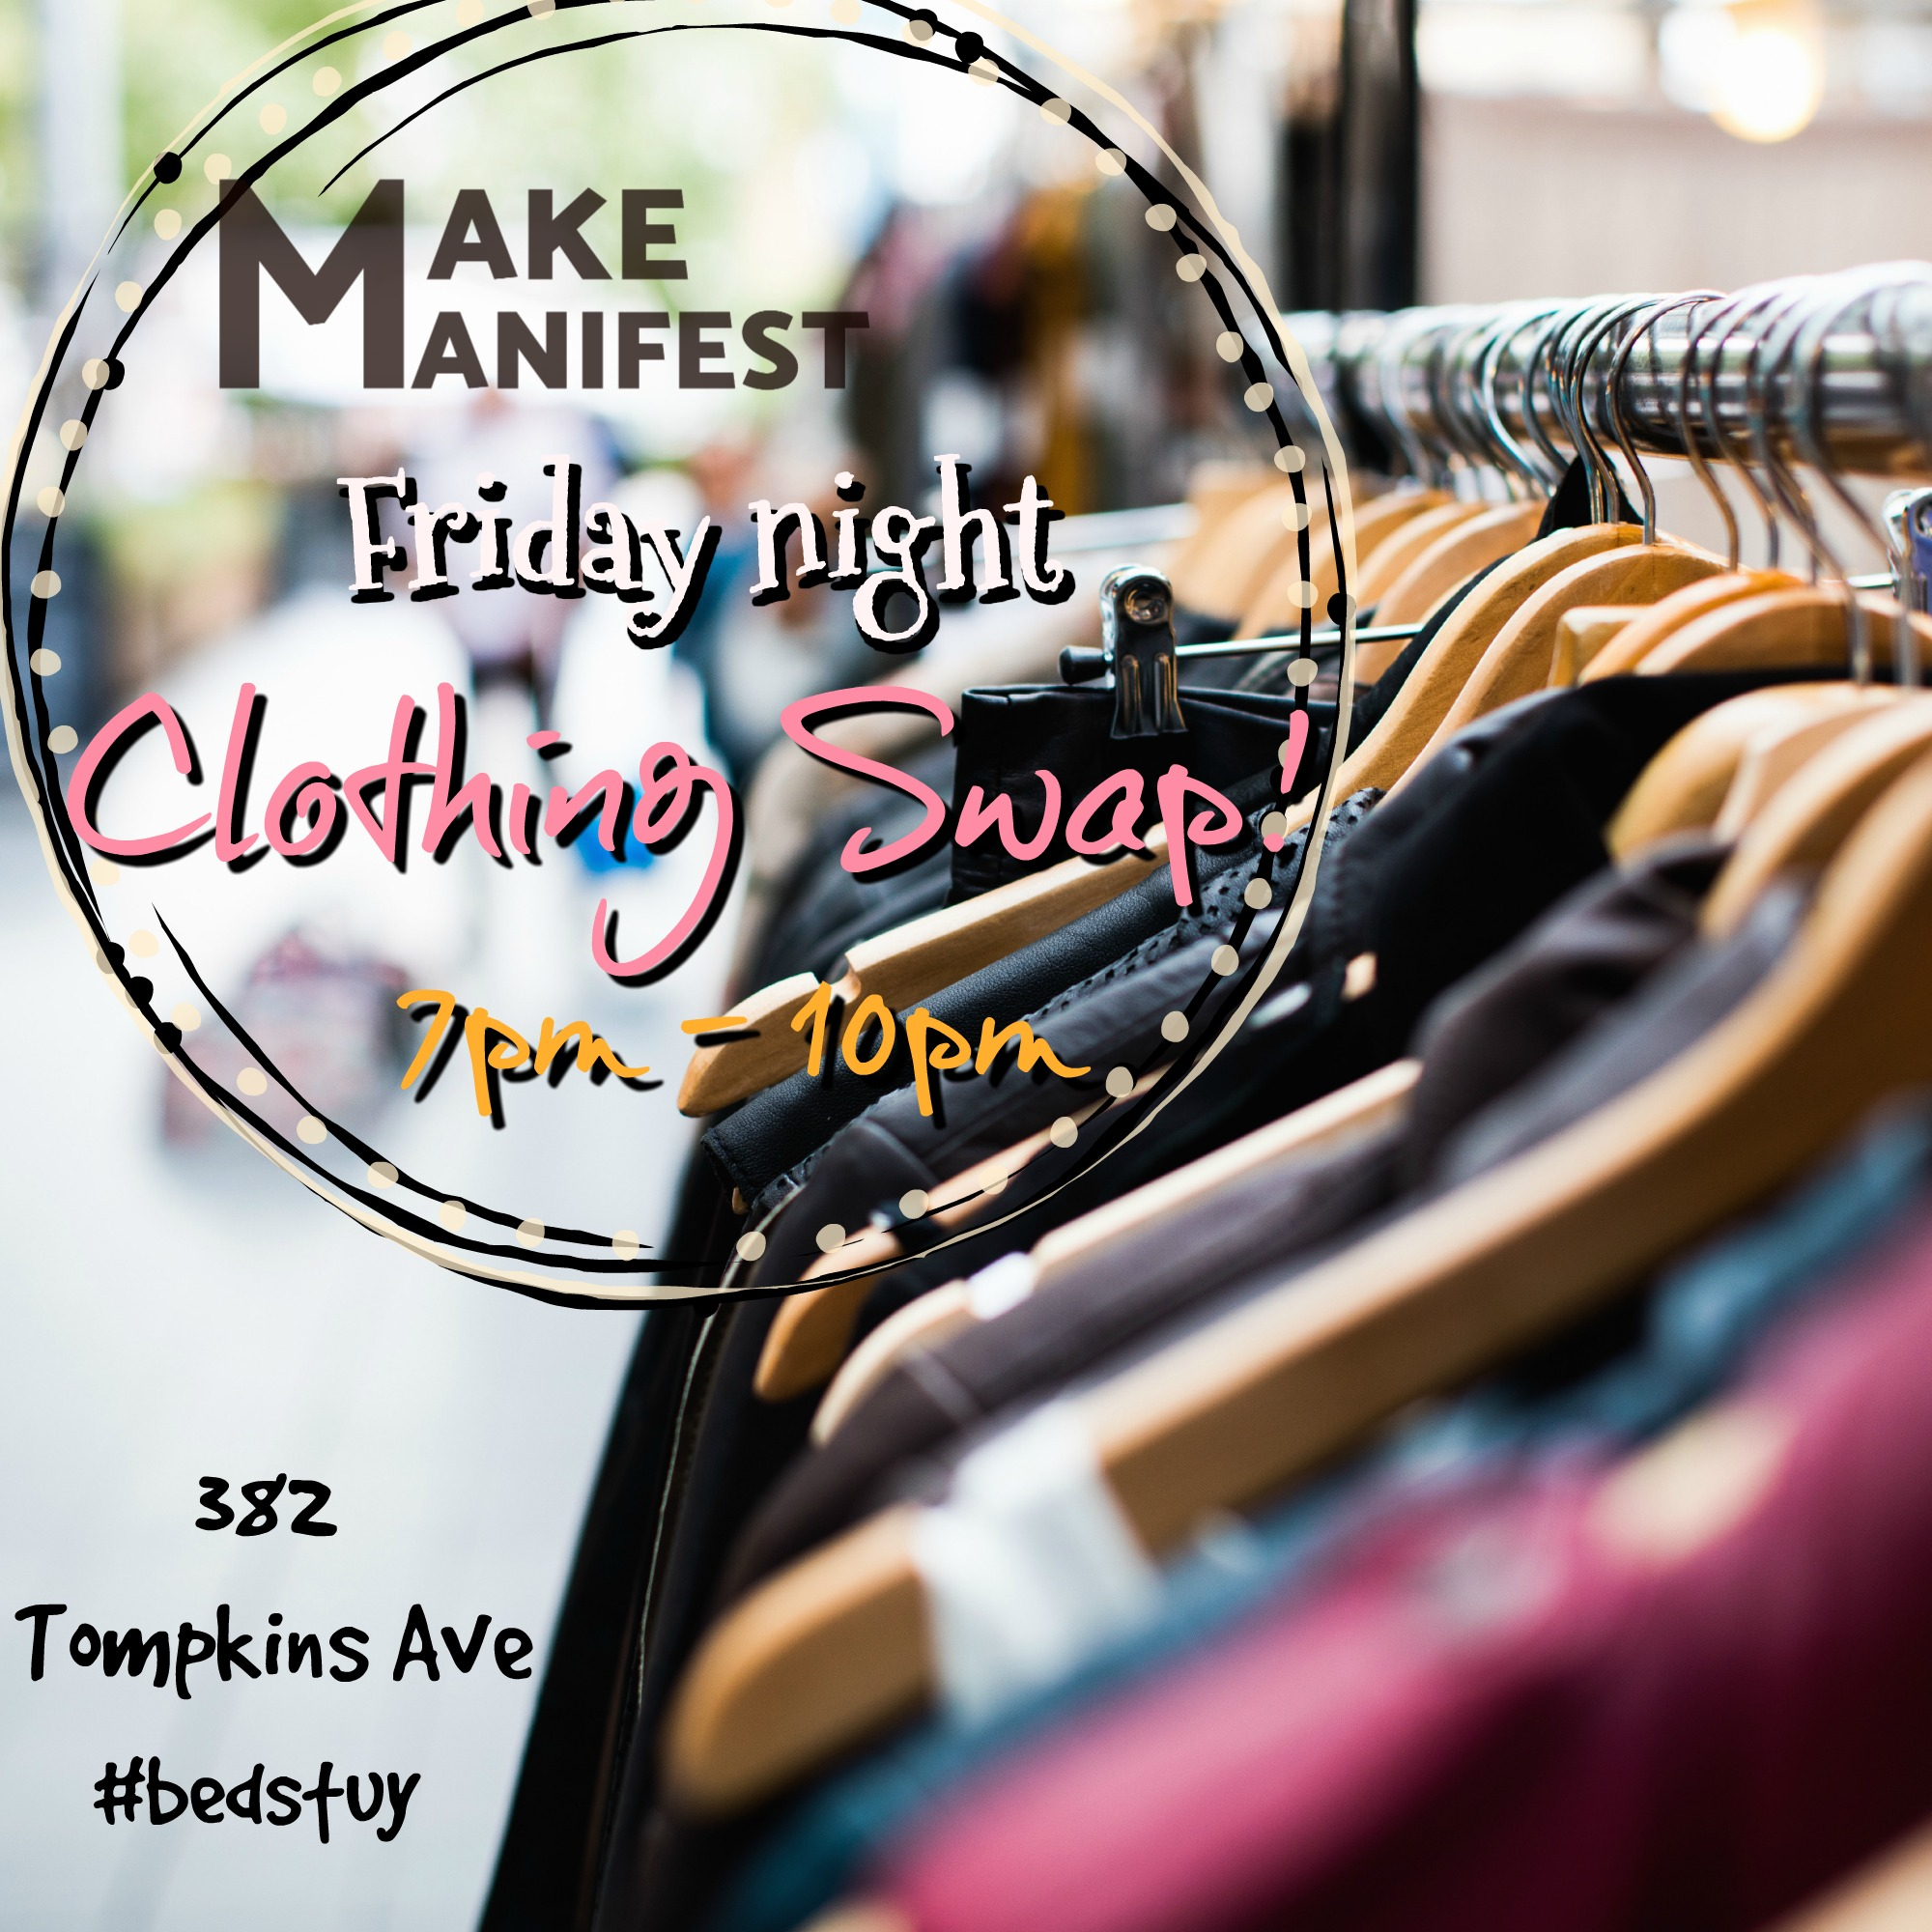 Last Friday of Every Month we Swap, Craft and Shop! - 1 to 1 Clothing SwapCrafts for youths and adultsShop a few local indie artisansApply to be a vendor!